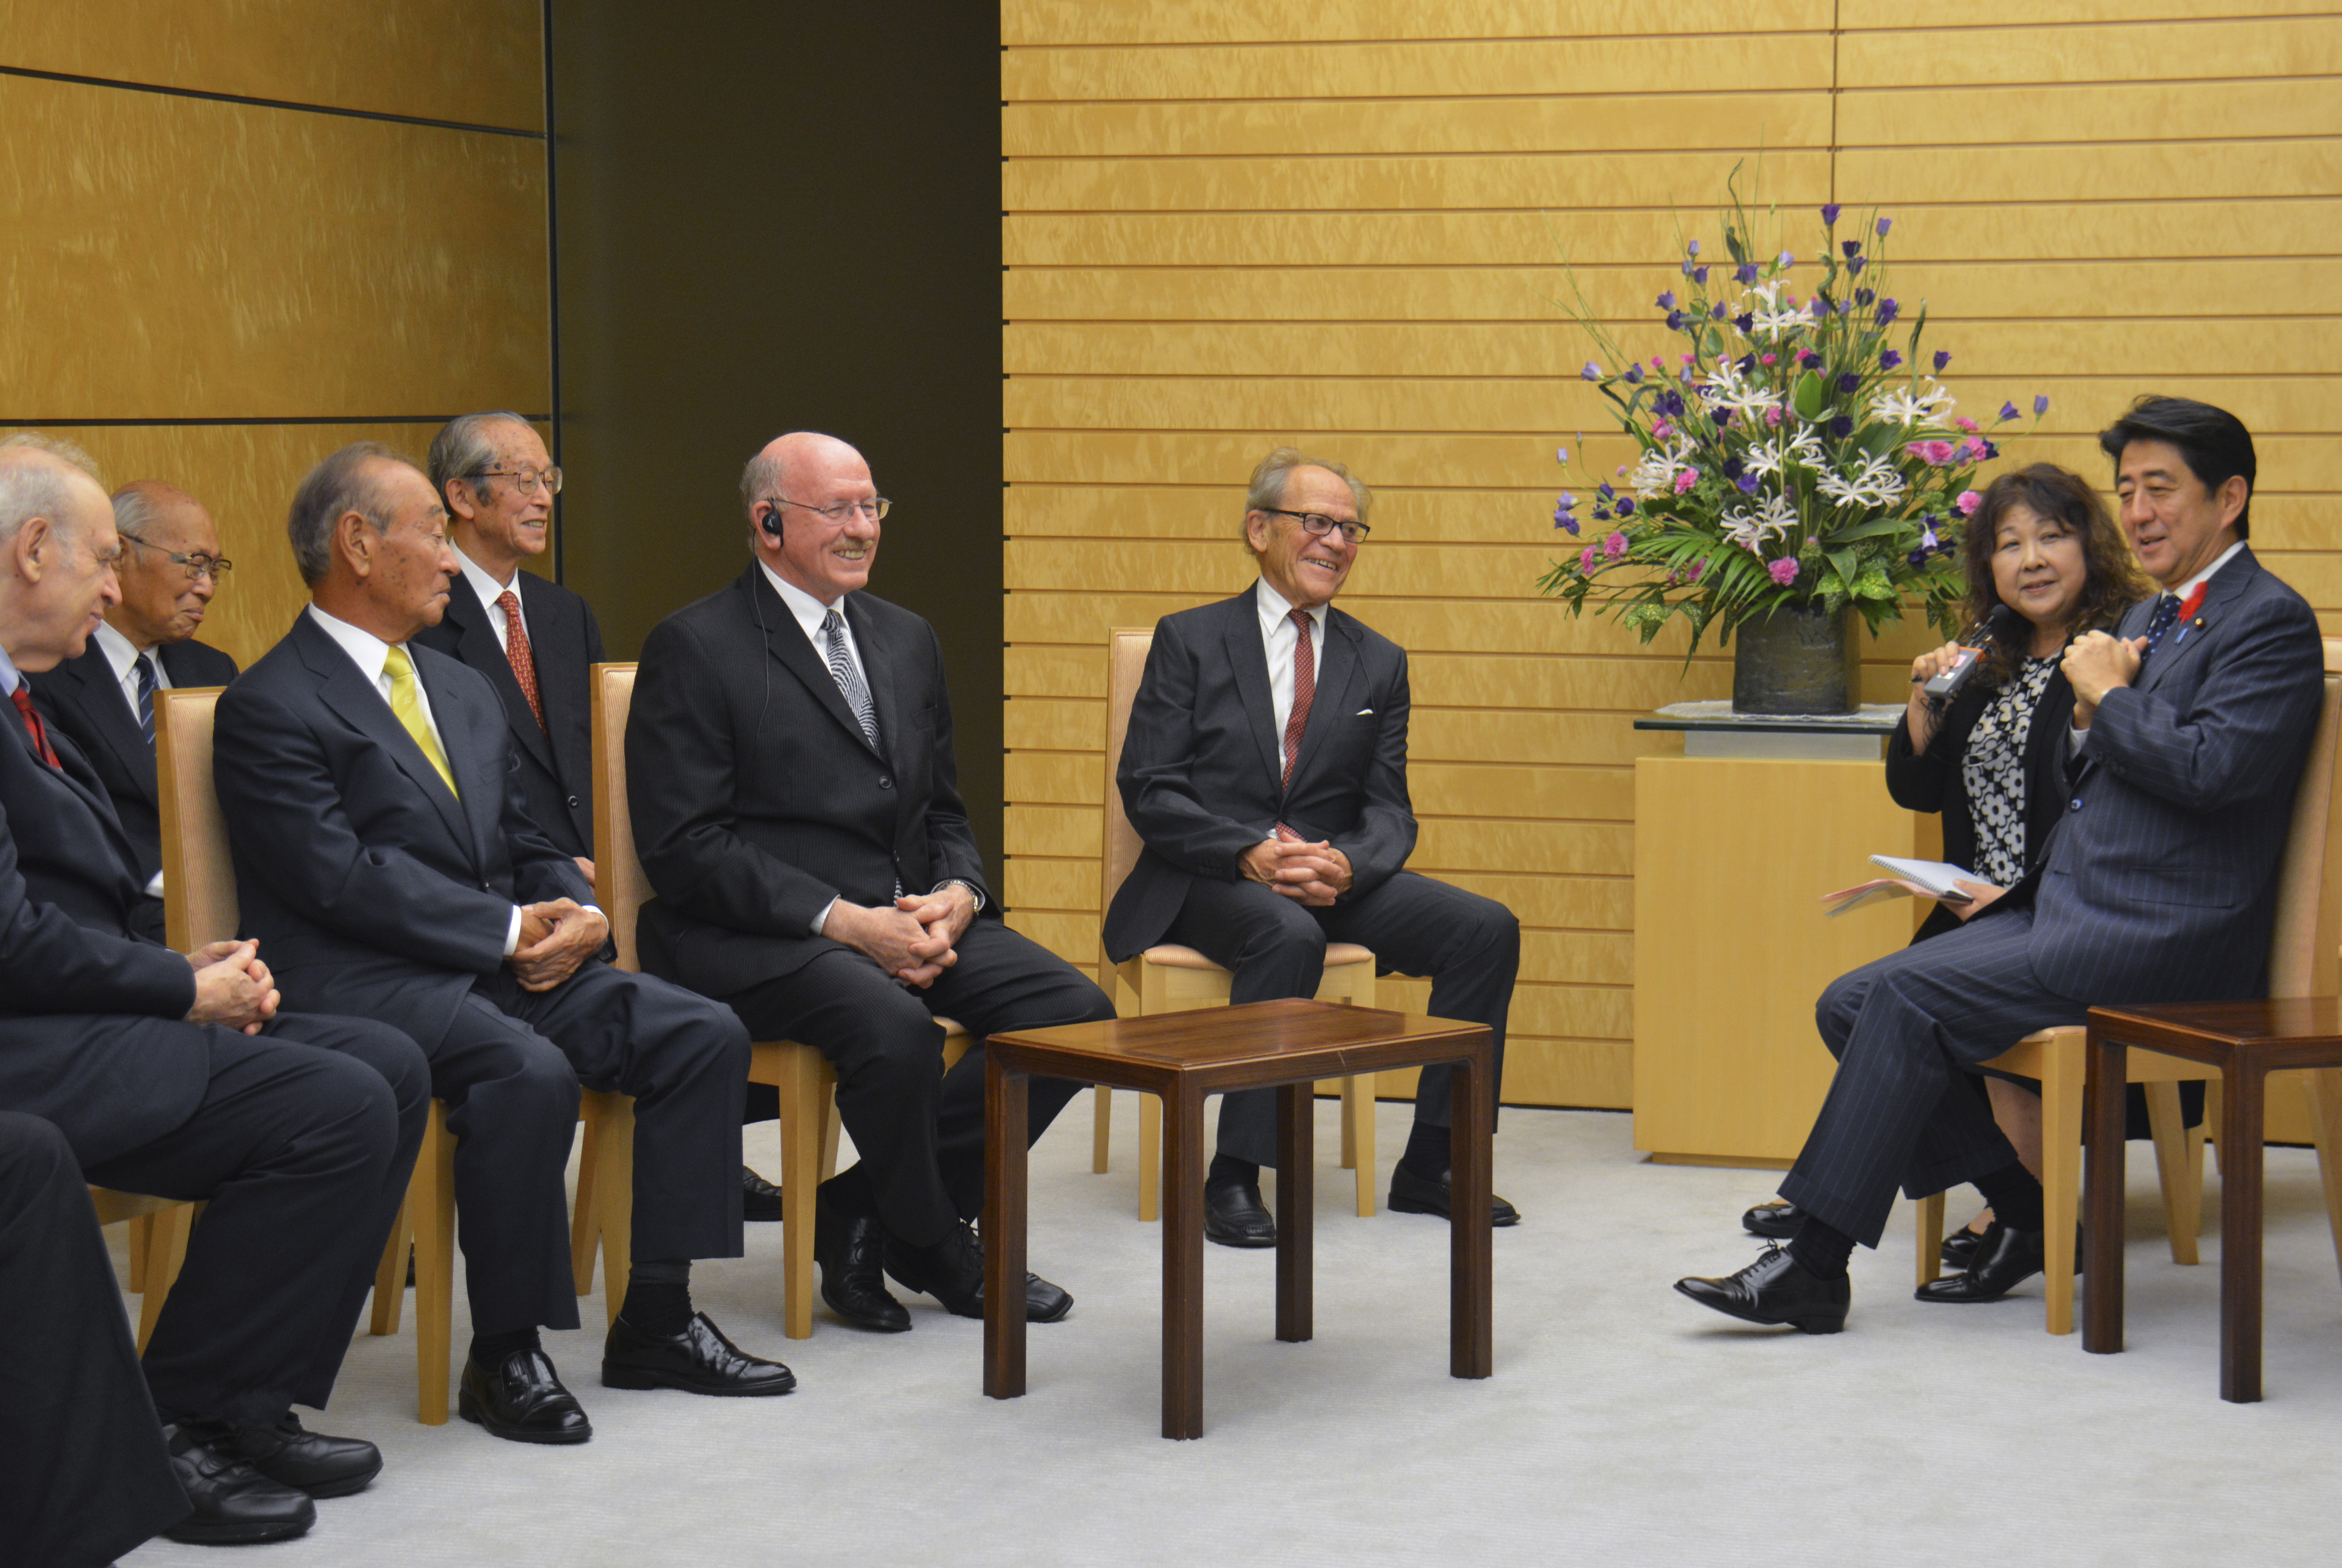 Board of Governors Meeting with Japanese Prime Minister Abe , 3 October 2013